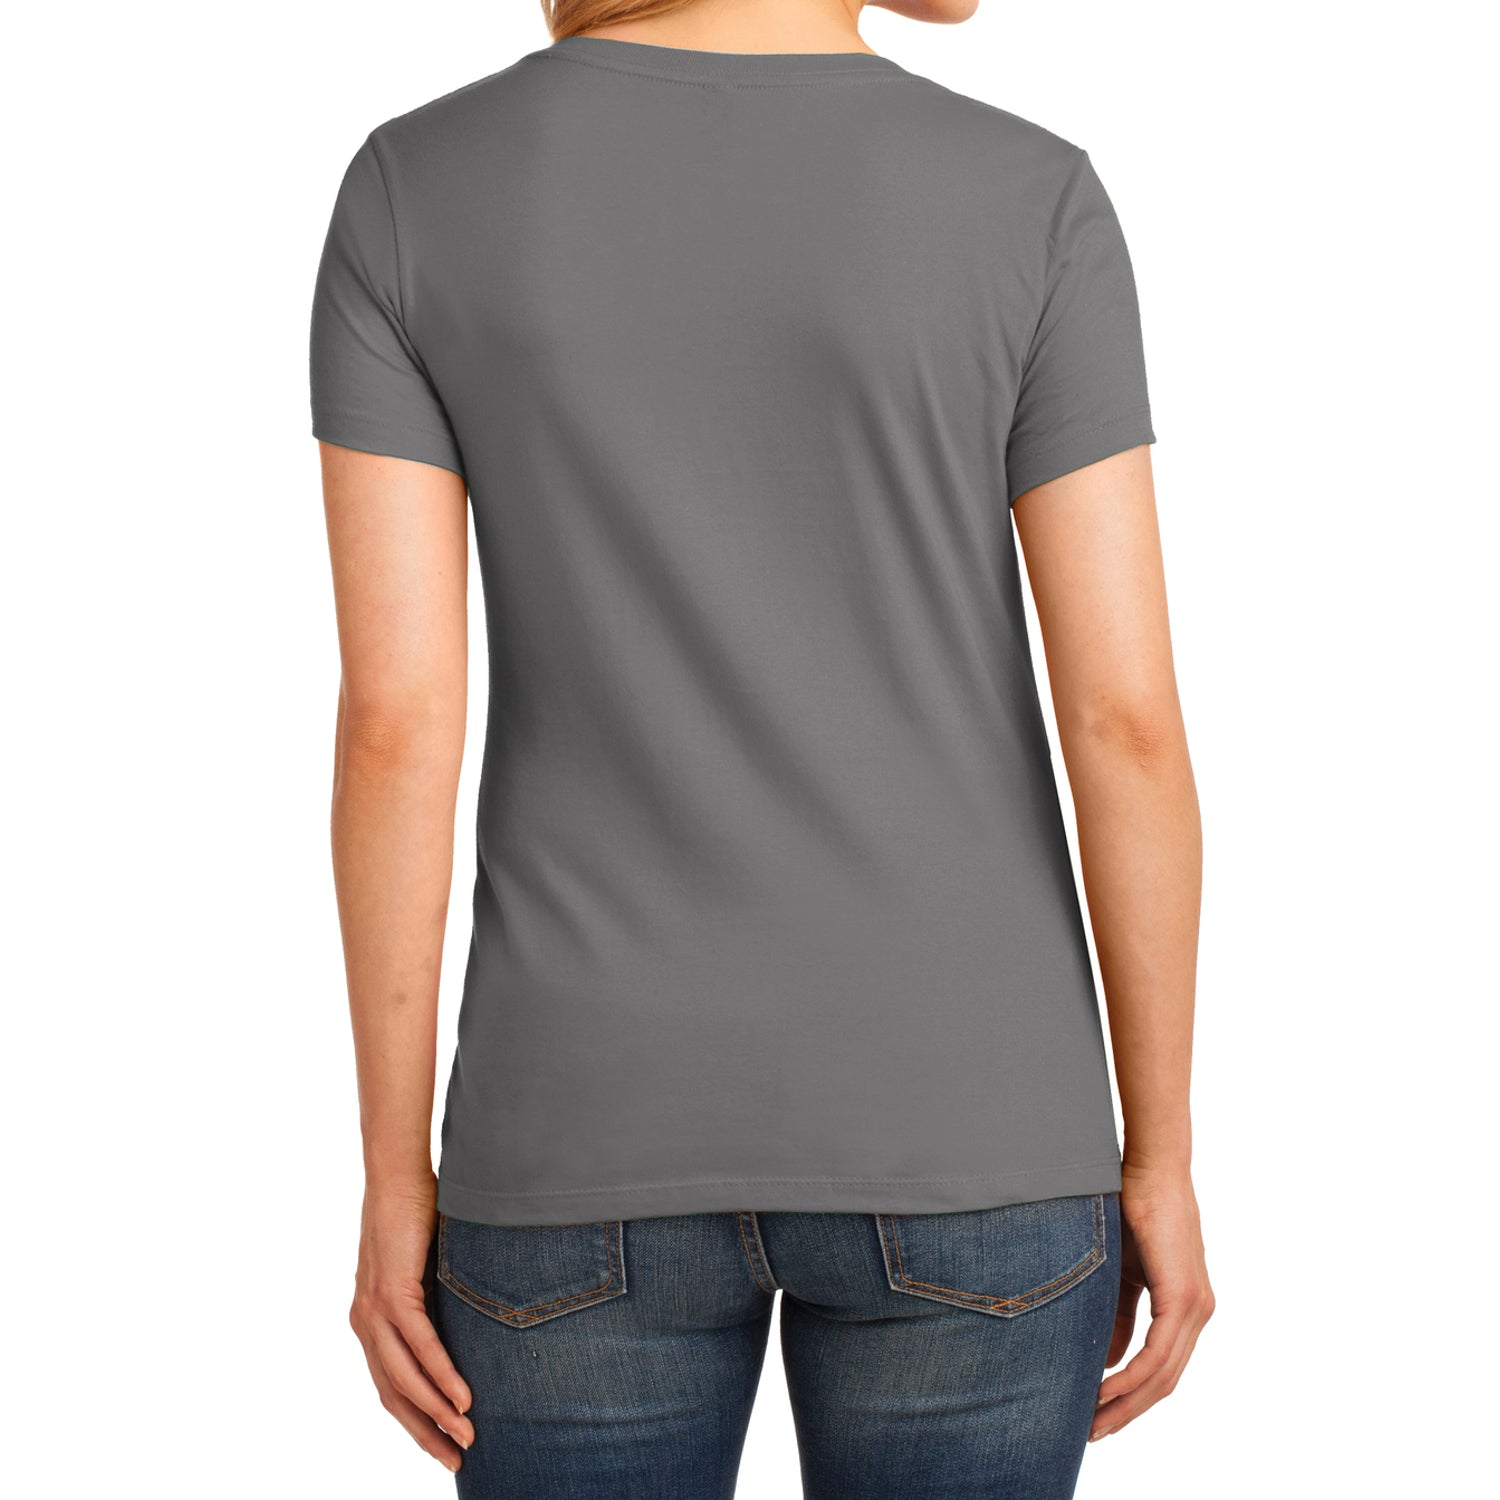 Women's Core Cotton V-Neck Tee Medium Grey - Back